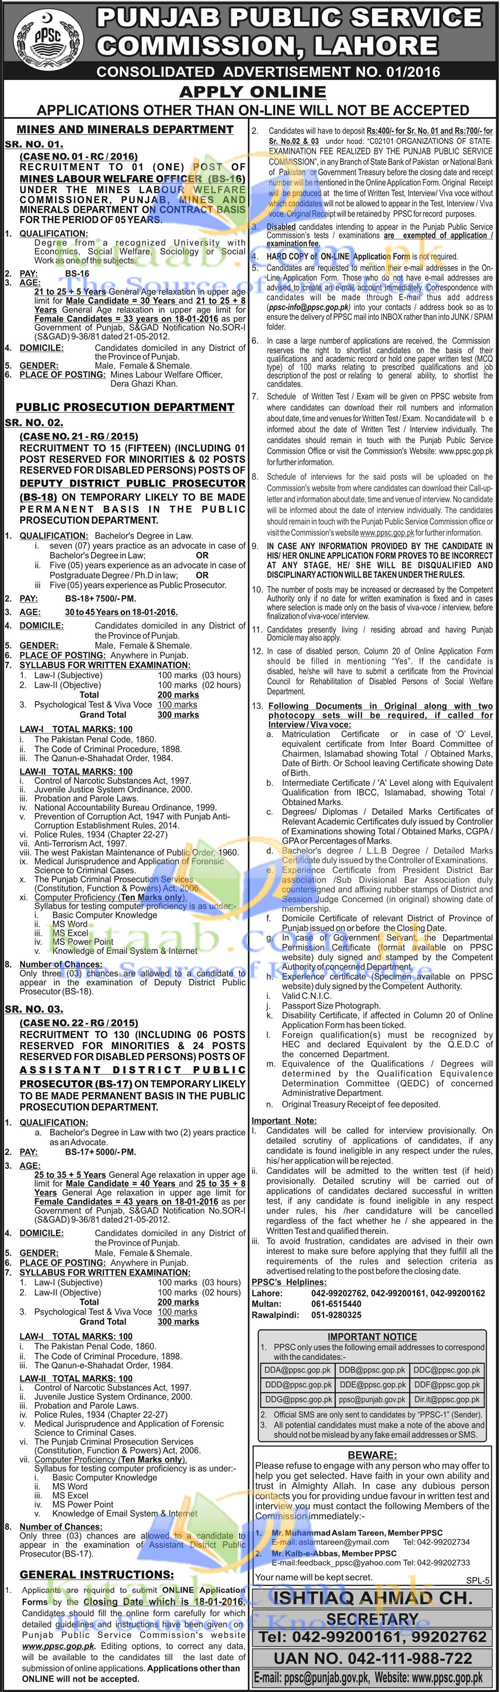 PPSC Public Prosecution Department Jobs 2016 Online Apply Eligibility Criteria Dates and Schedule